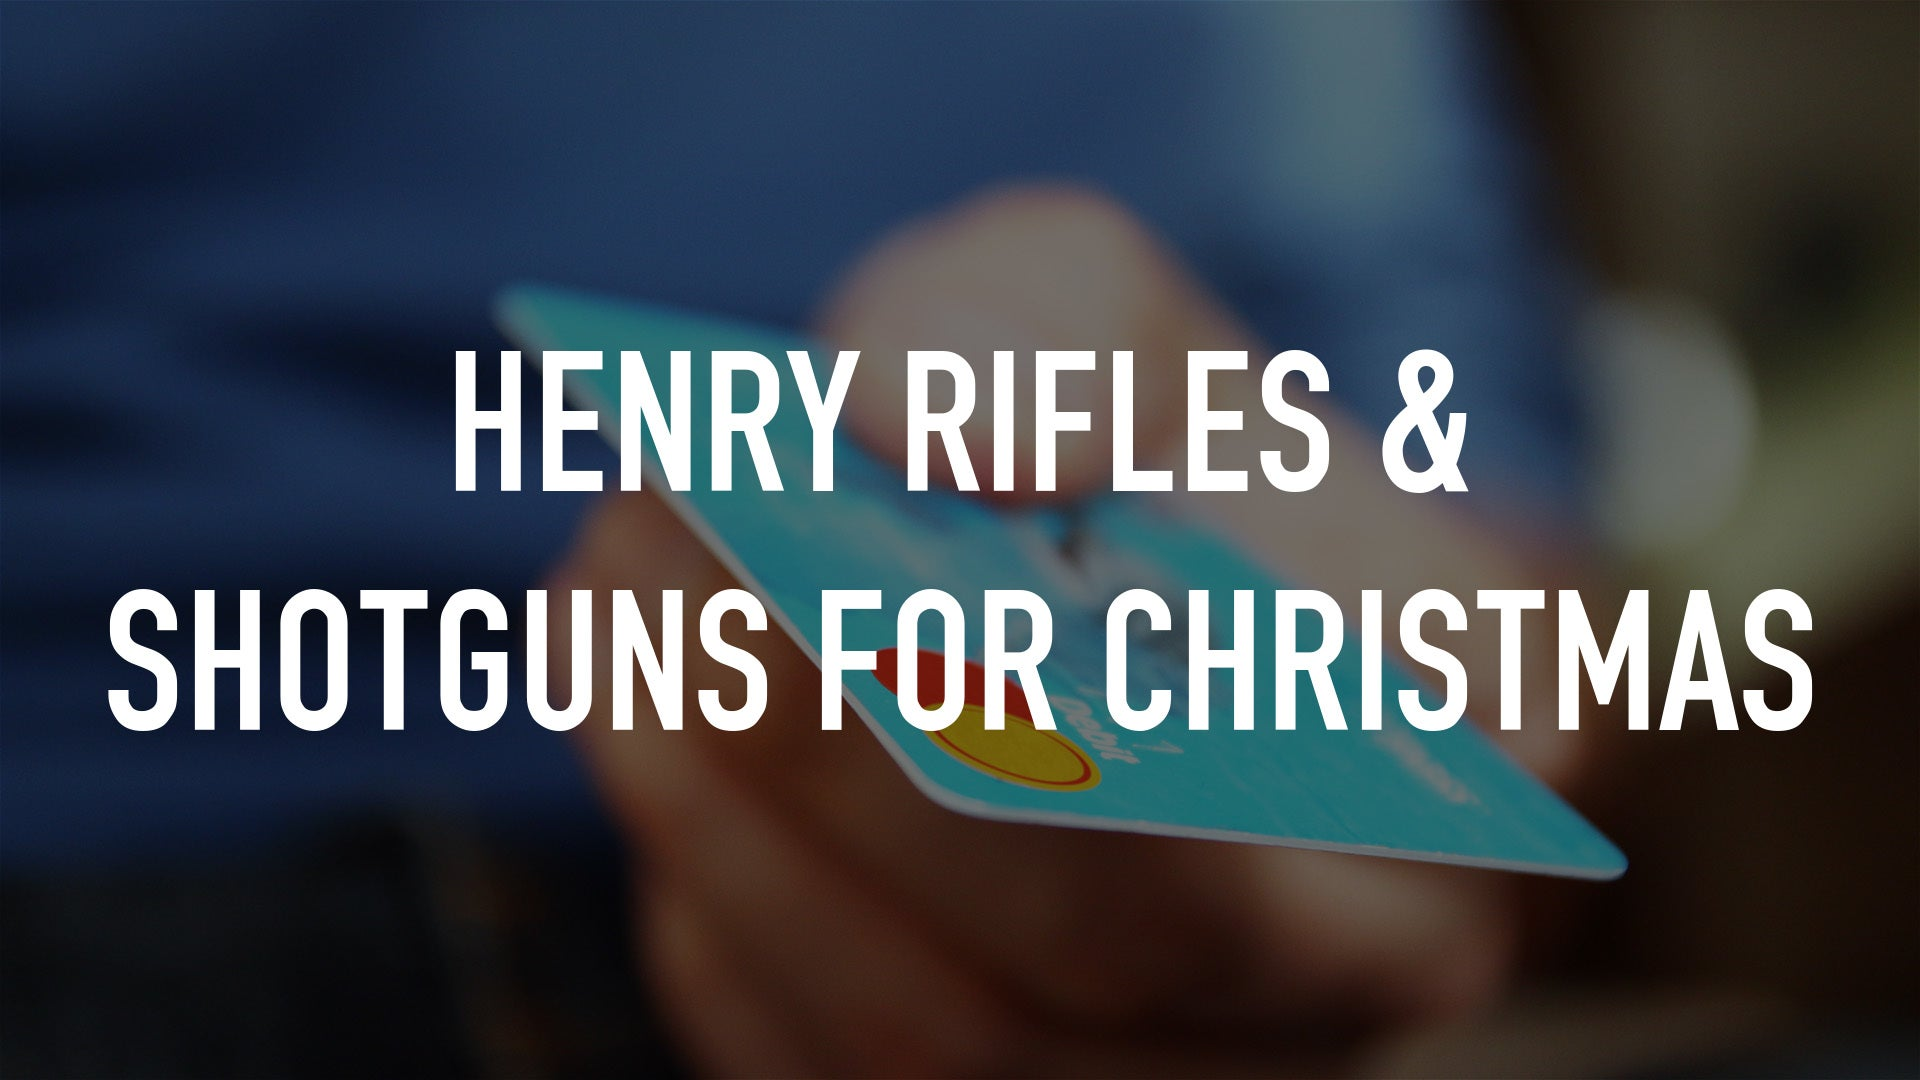 Henry Rifles & Shotguns for Christmas